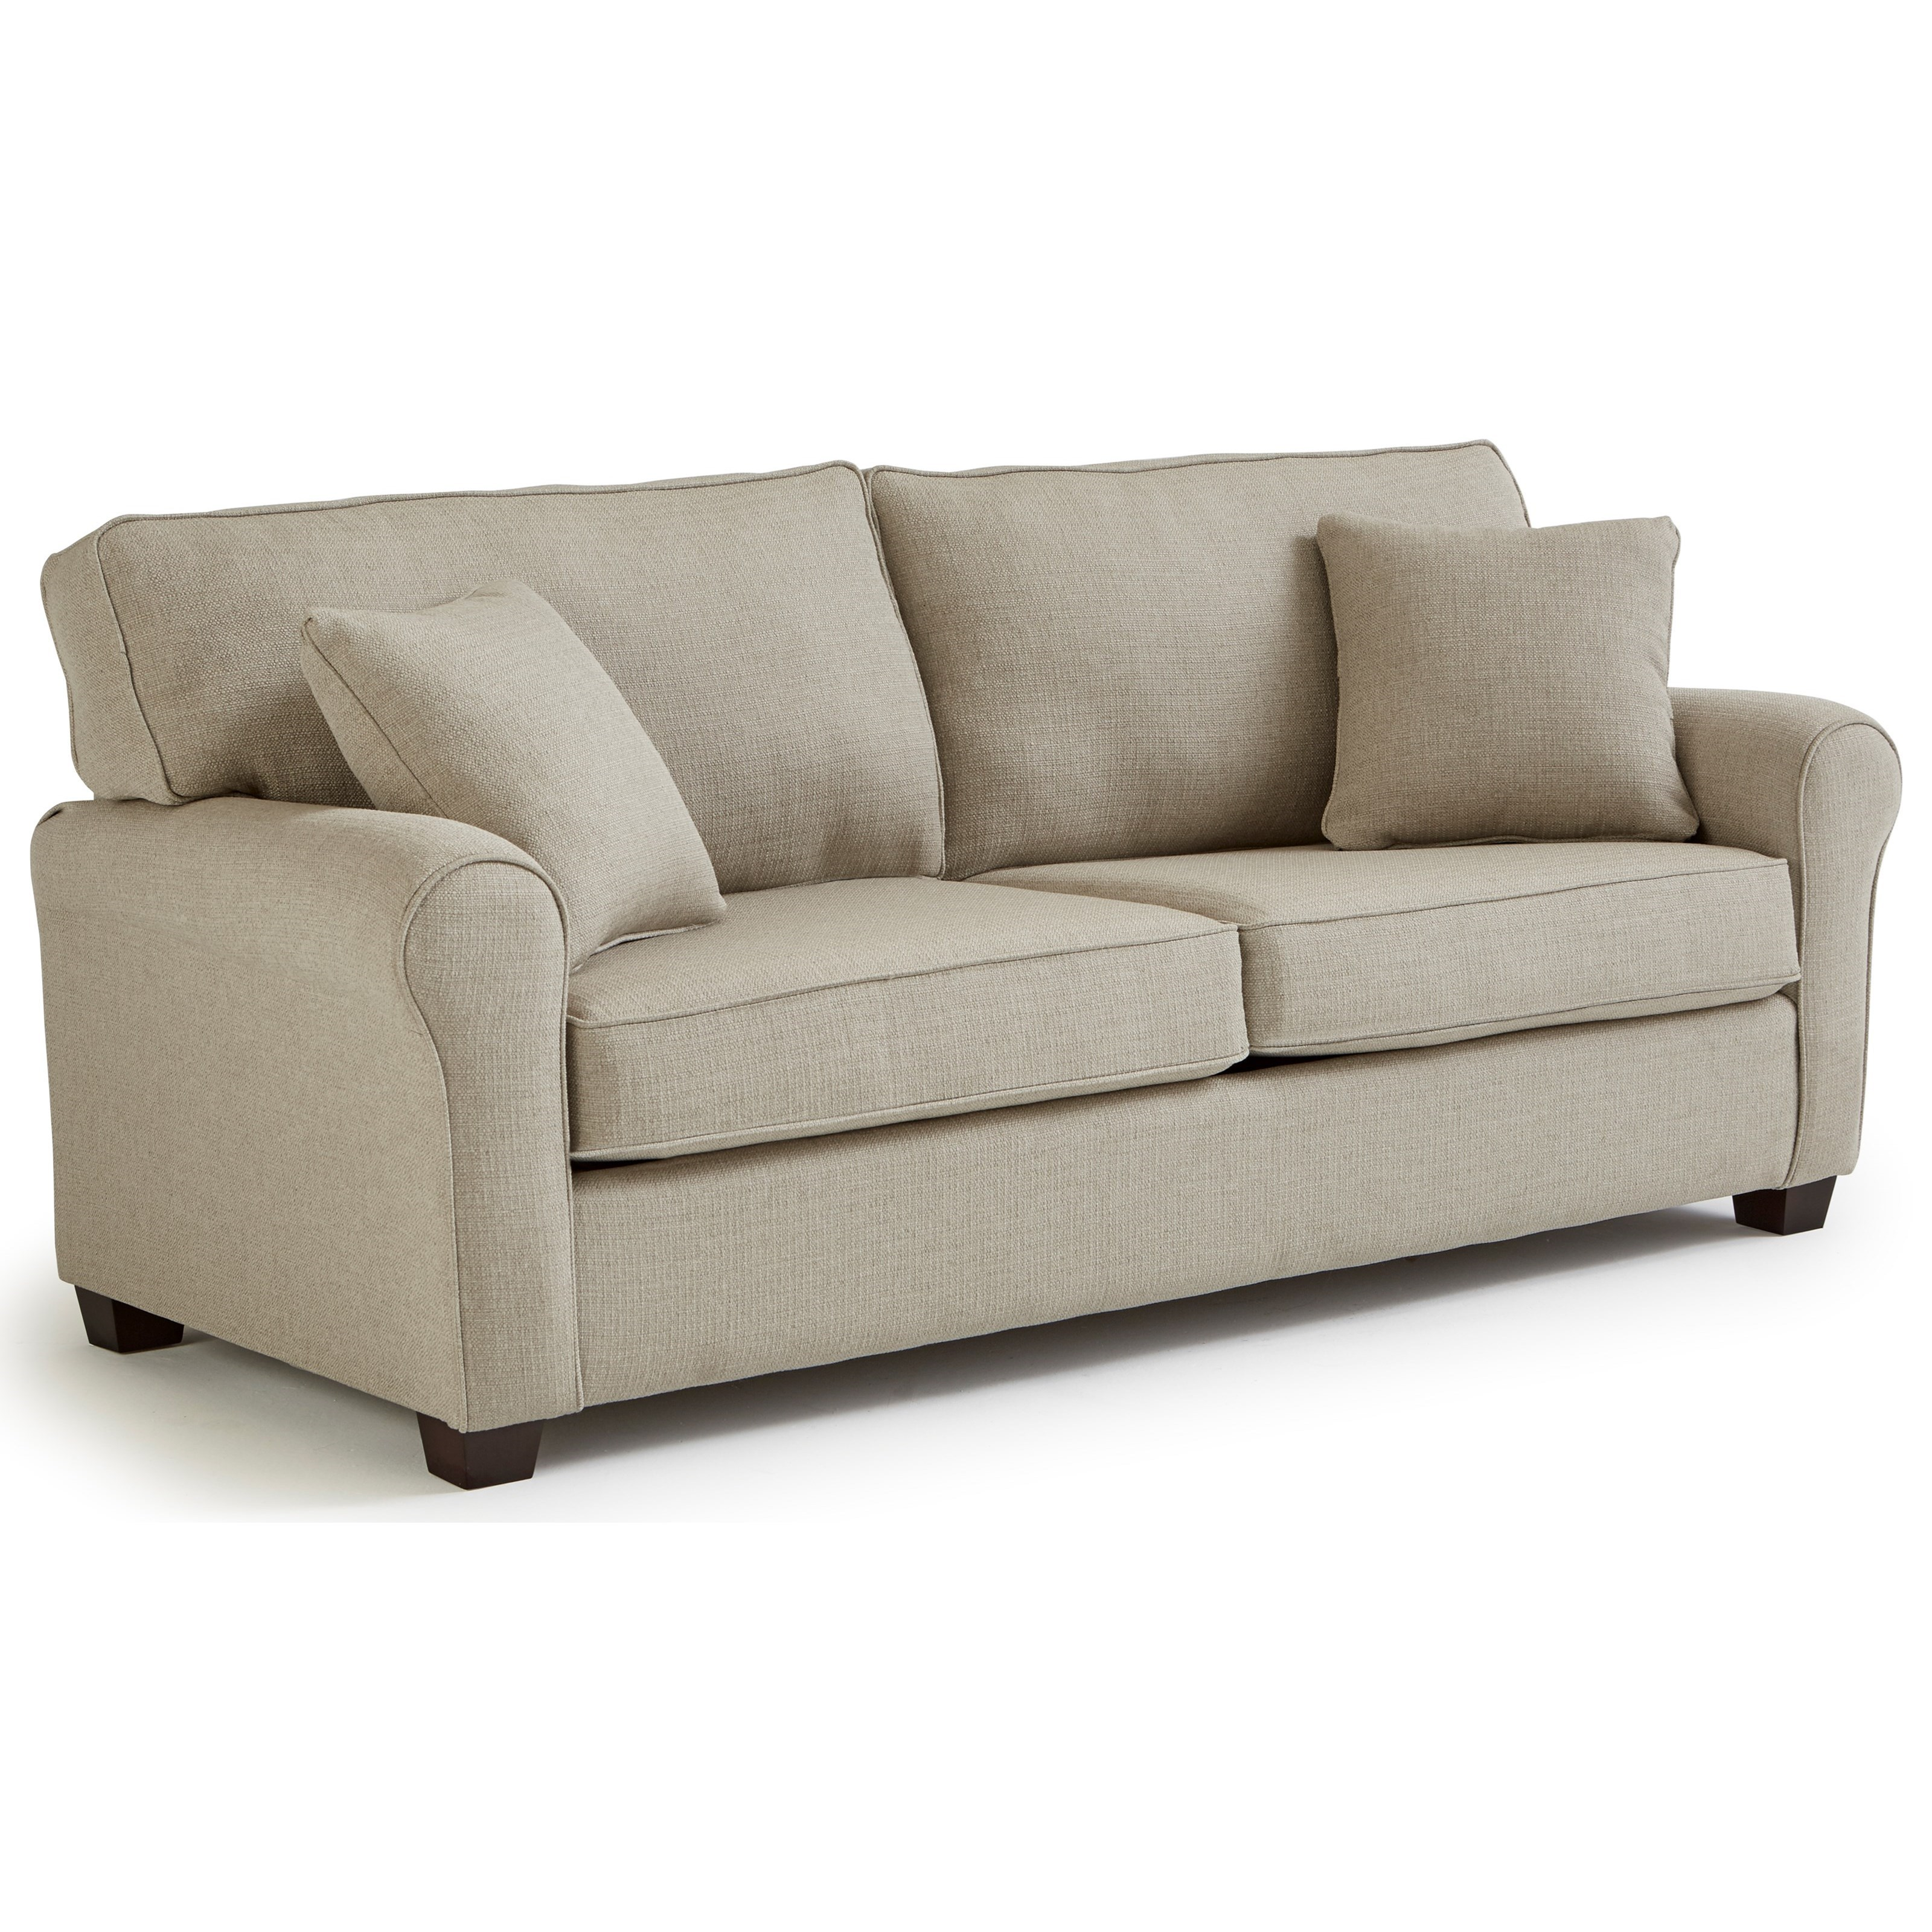 Best Home Furnishings Shannon Queen Sofa Sleeper - Item Number: S14Q-21957